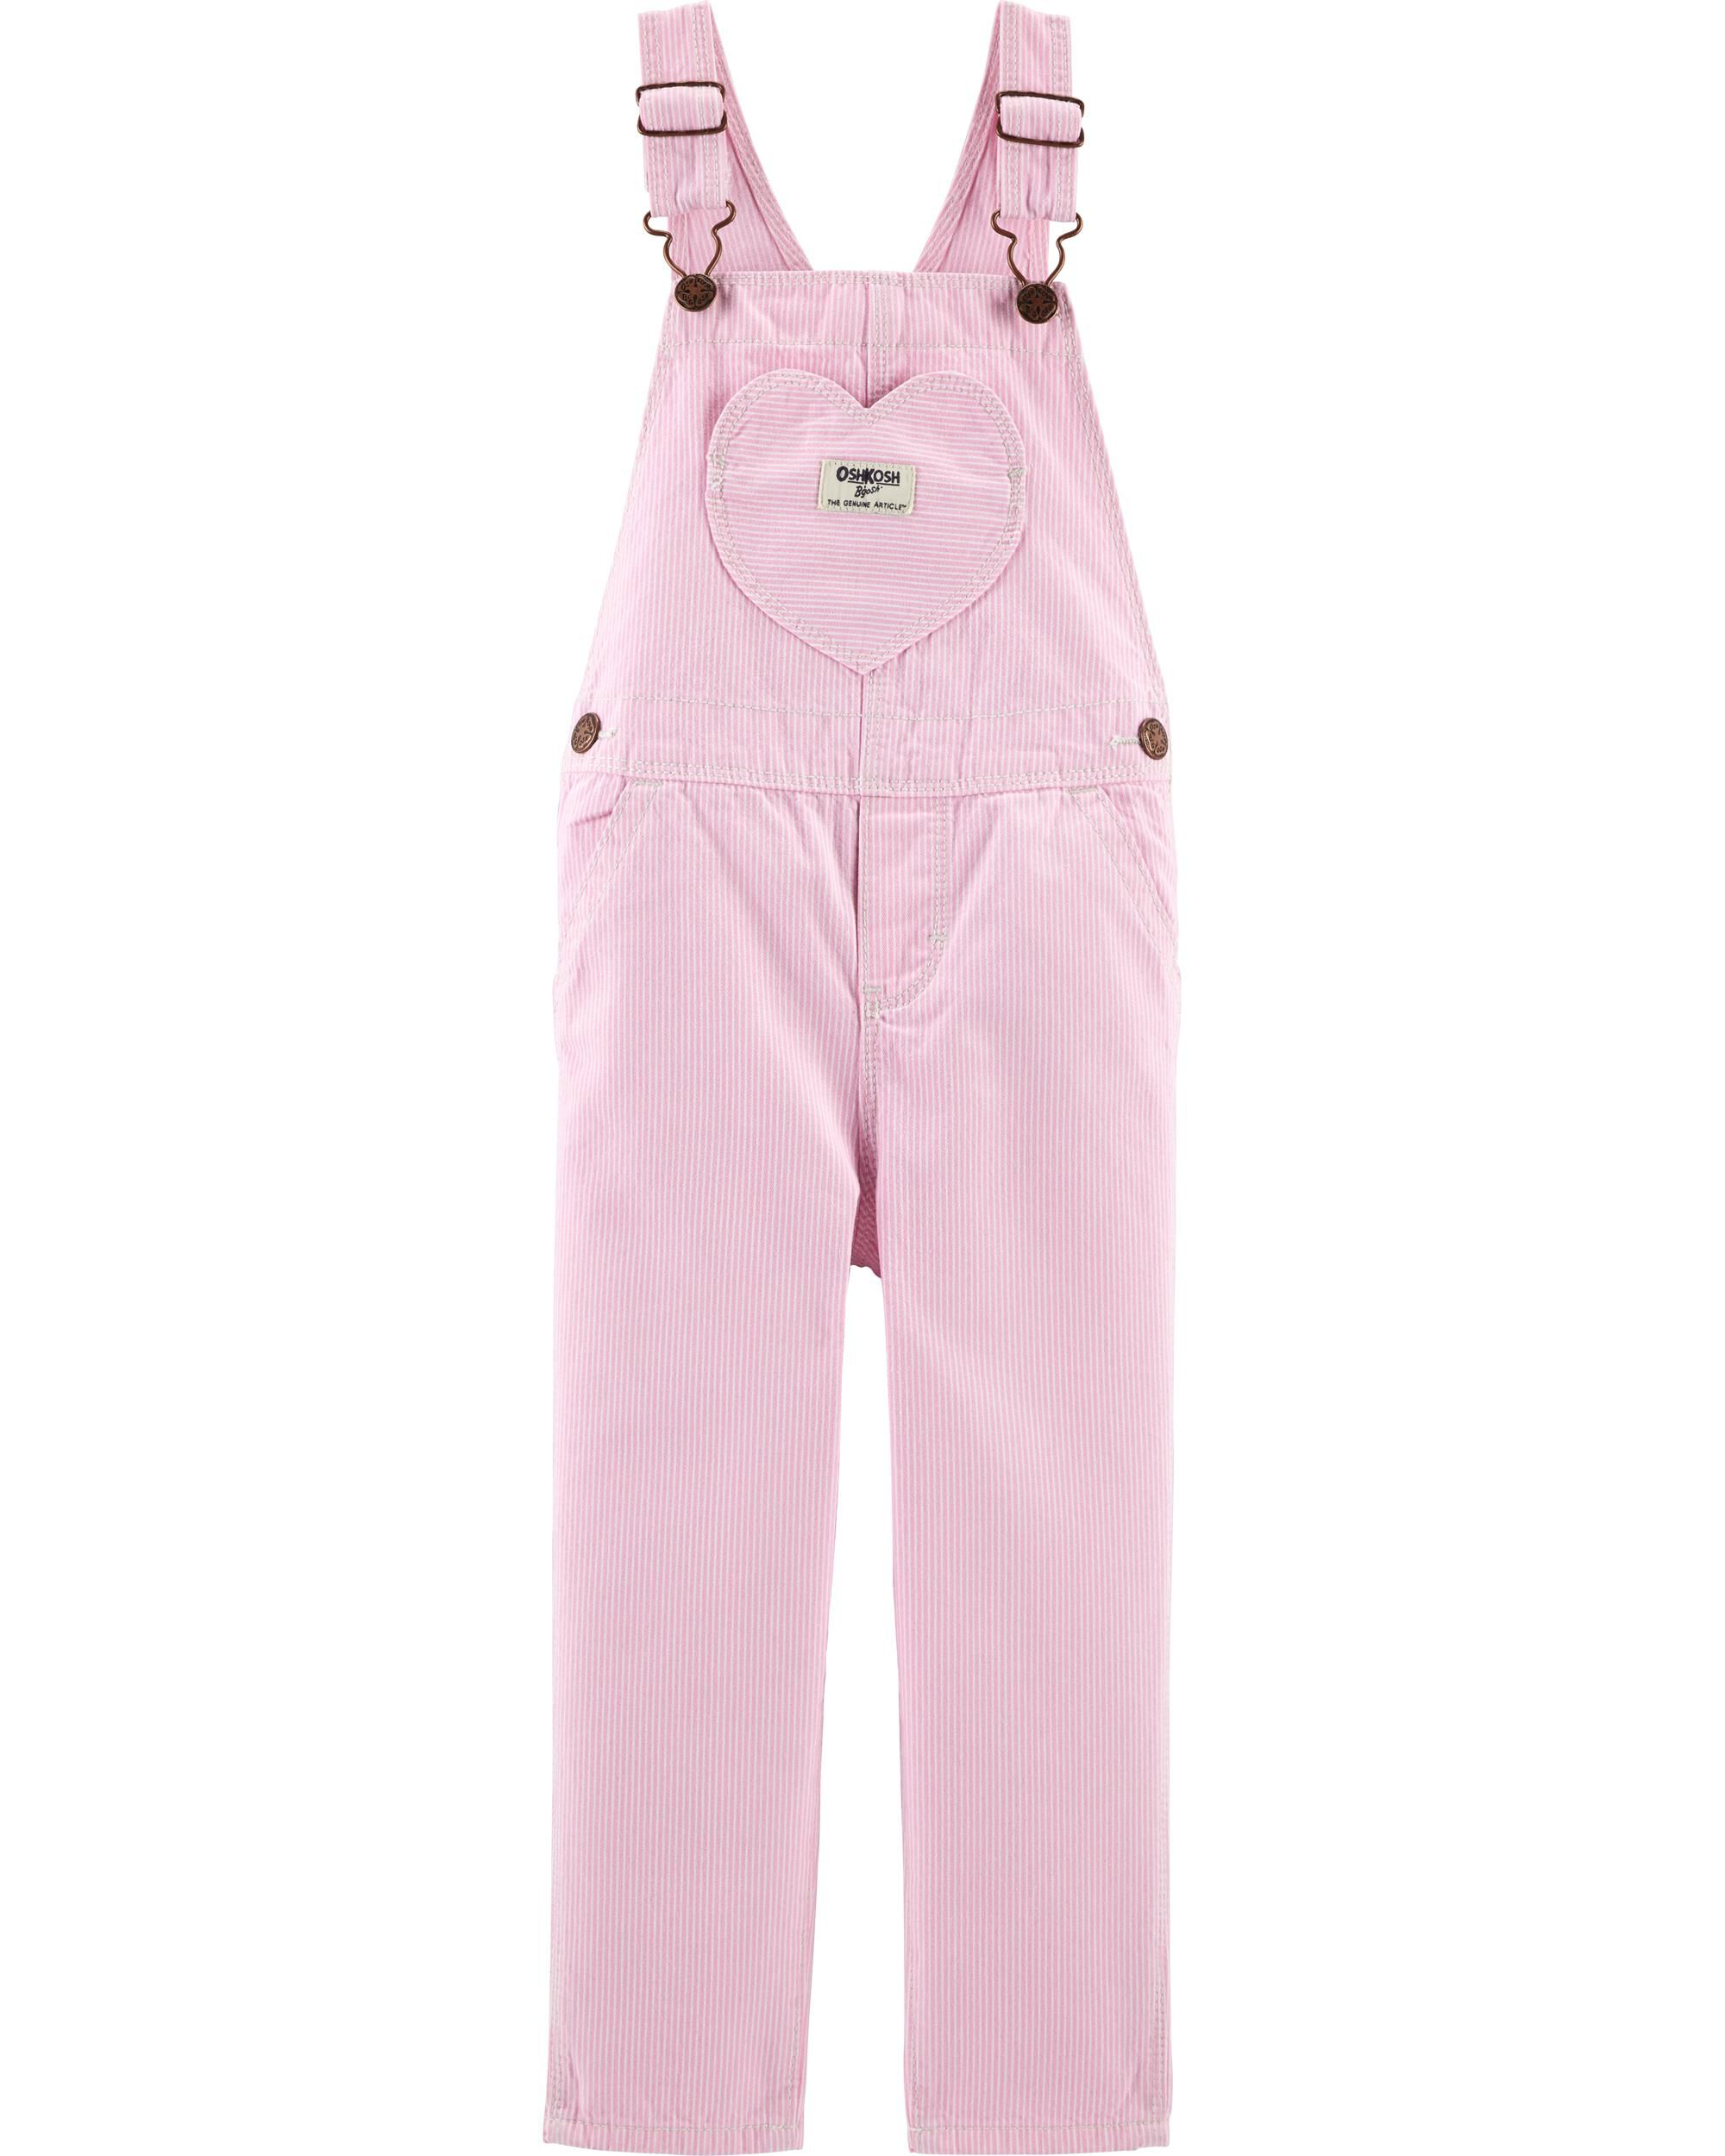 Girls' Clothing (newborn-5t) Osh Kosh 6 Months Girls Pink And White Stripped Overall At Any Cost Baby & Toddler Clothing